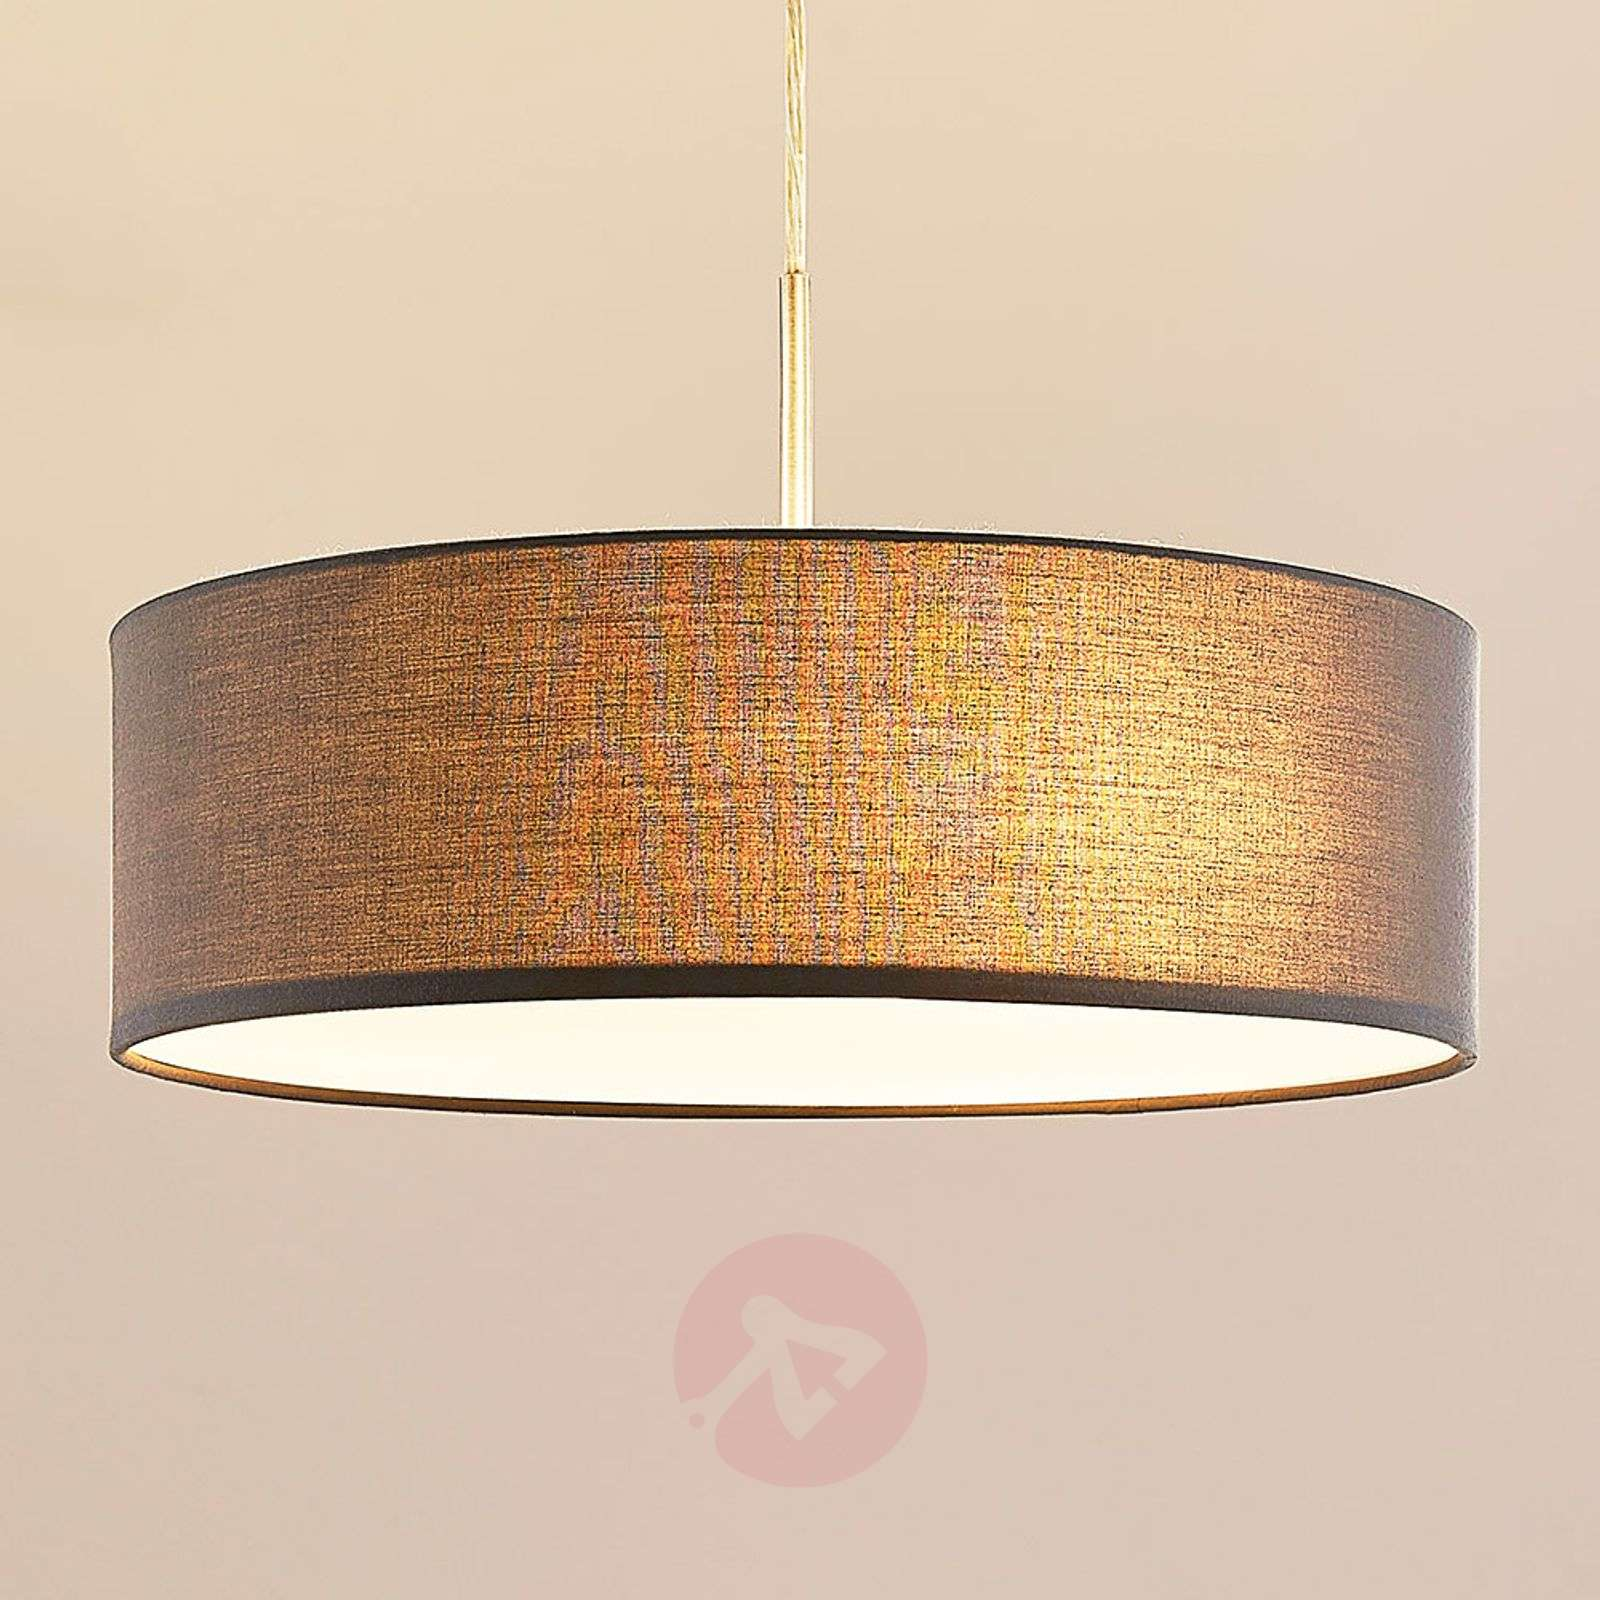 Sebatin - Fabric Pendant Light In Grey